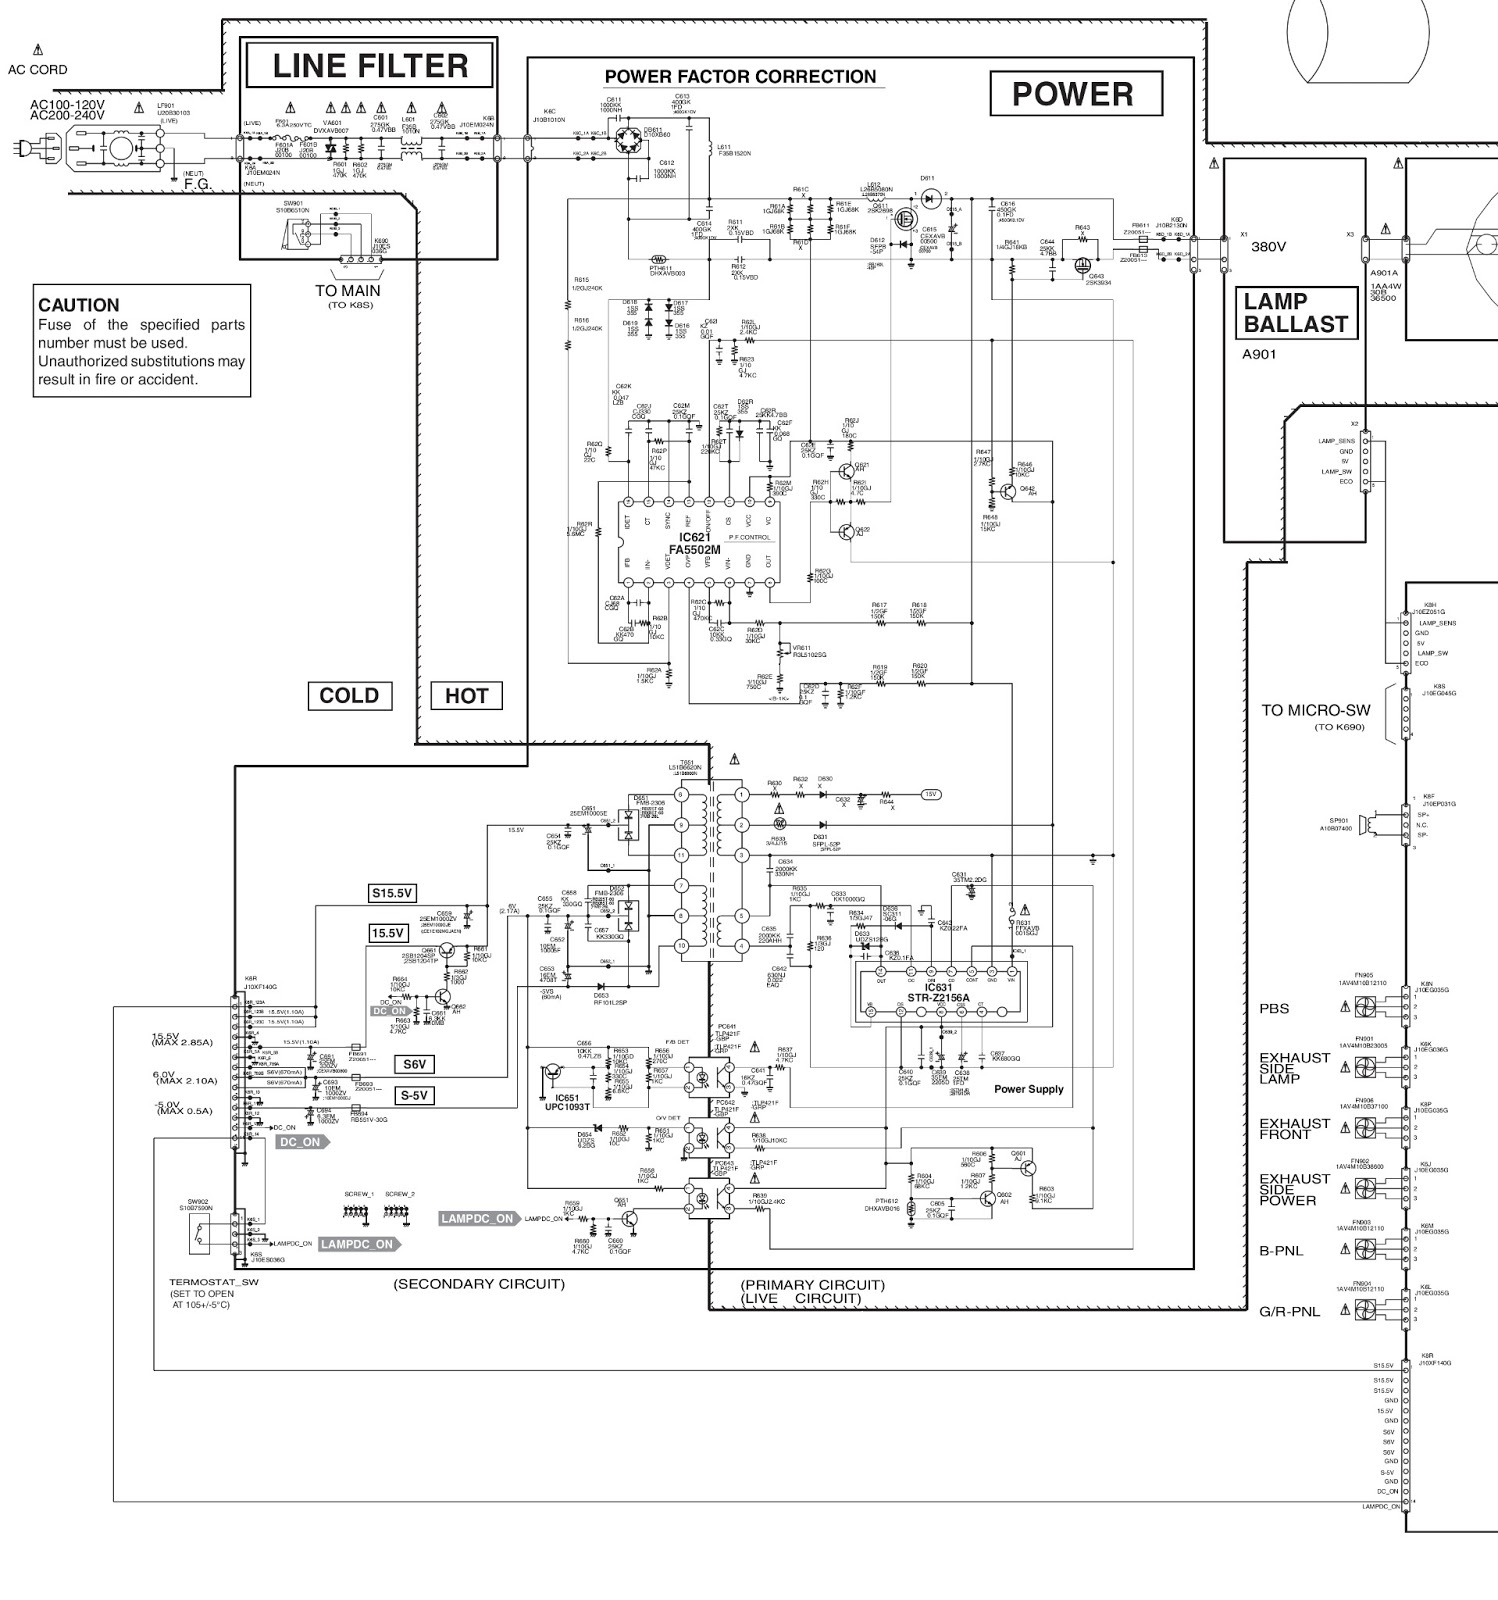 sanyo plc xu87 projector power supply schematic diagrampower side a [ 1498 x 1600 Pixel ]